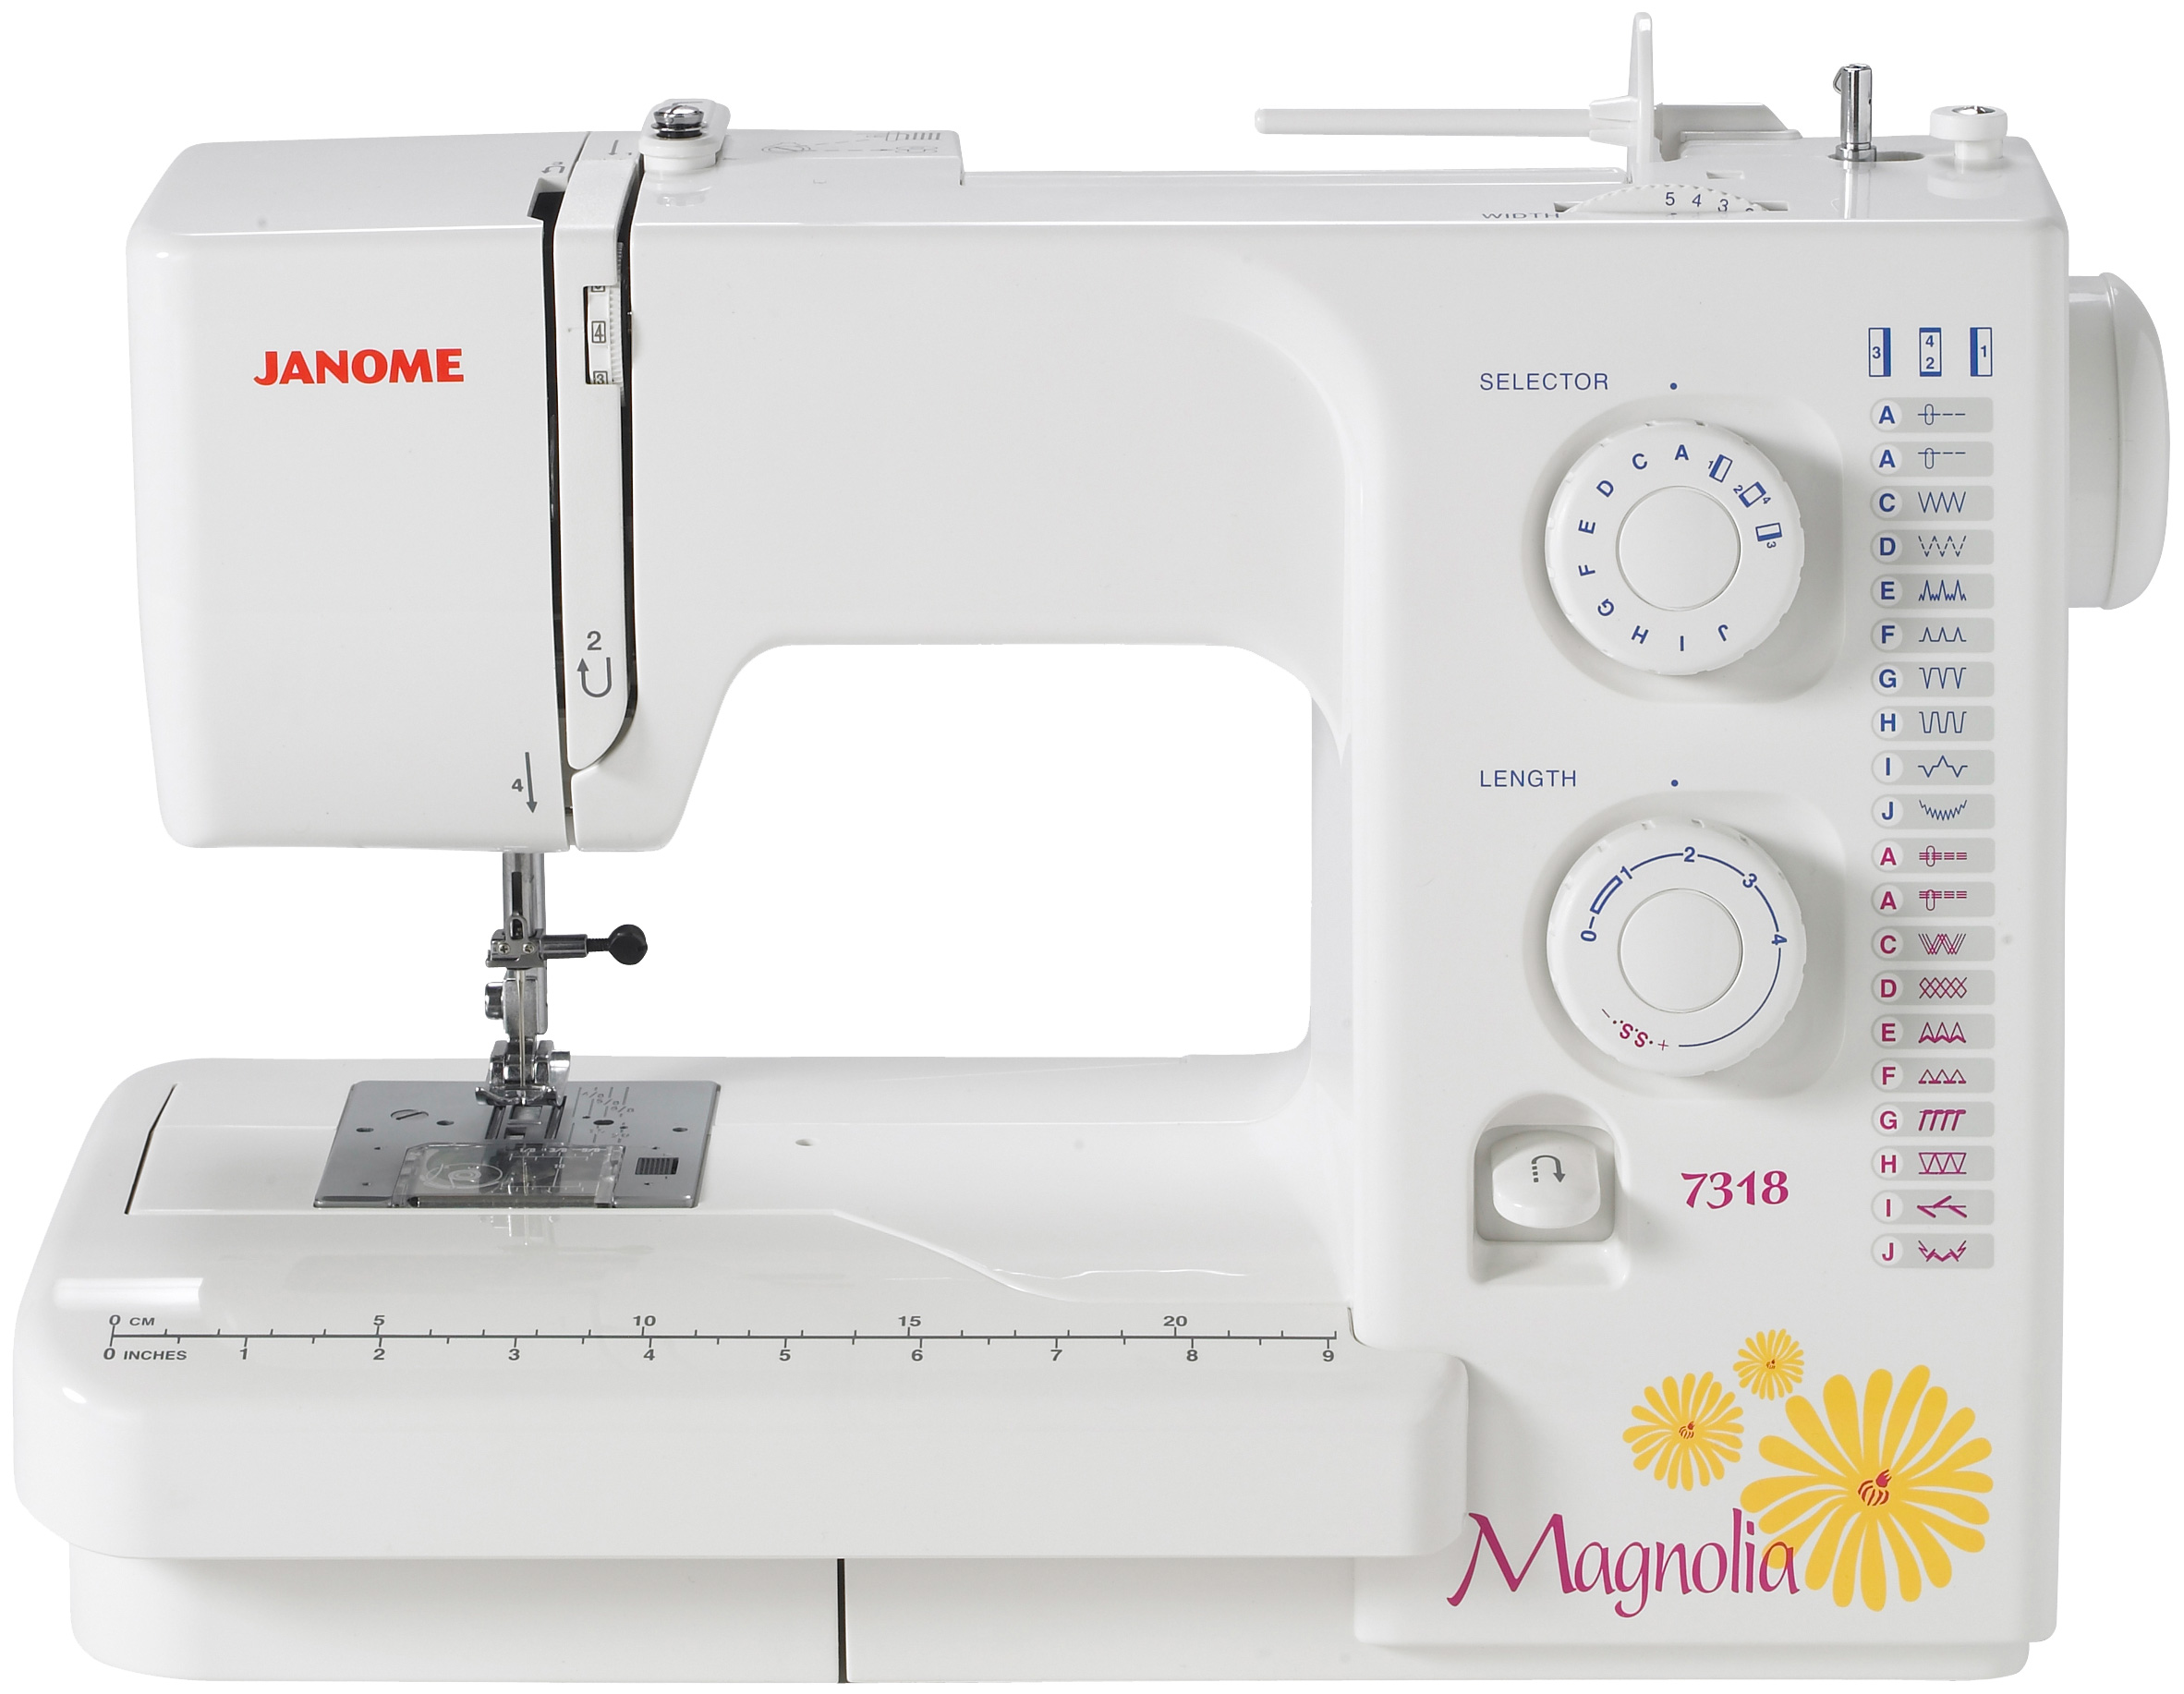 quilt sew machine janome compare category shop quilting sewing